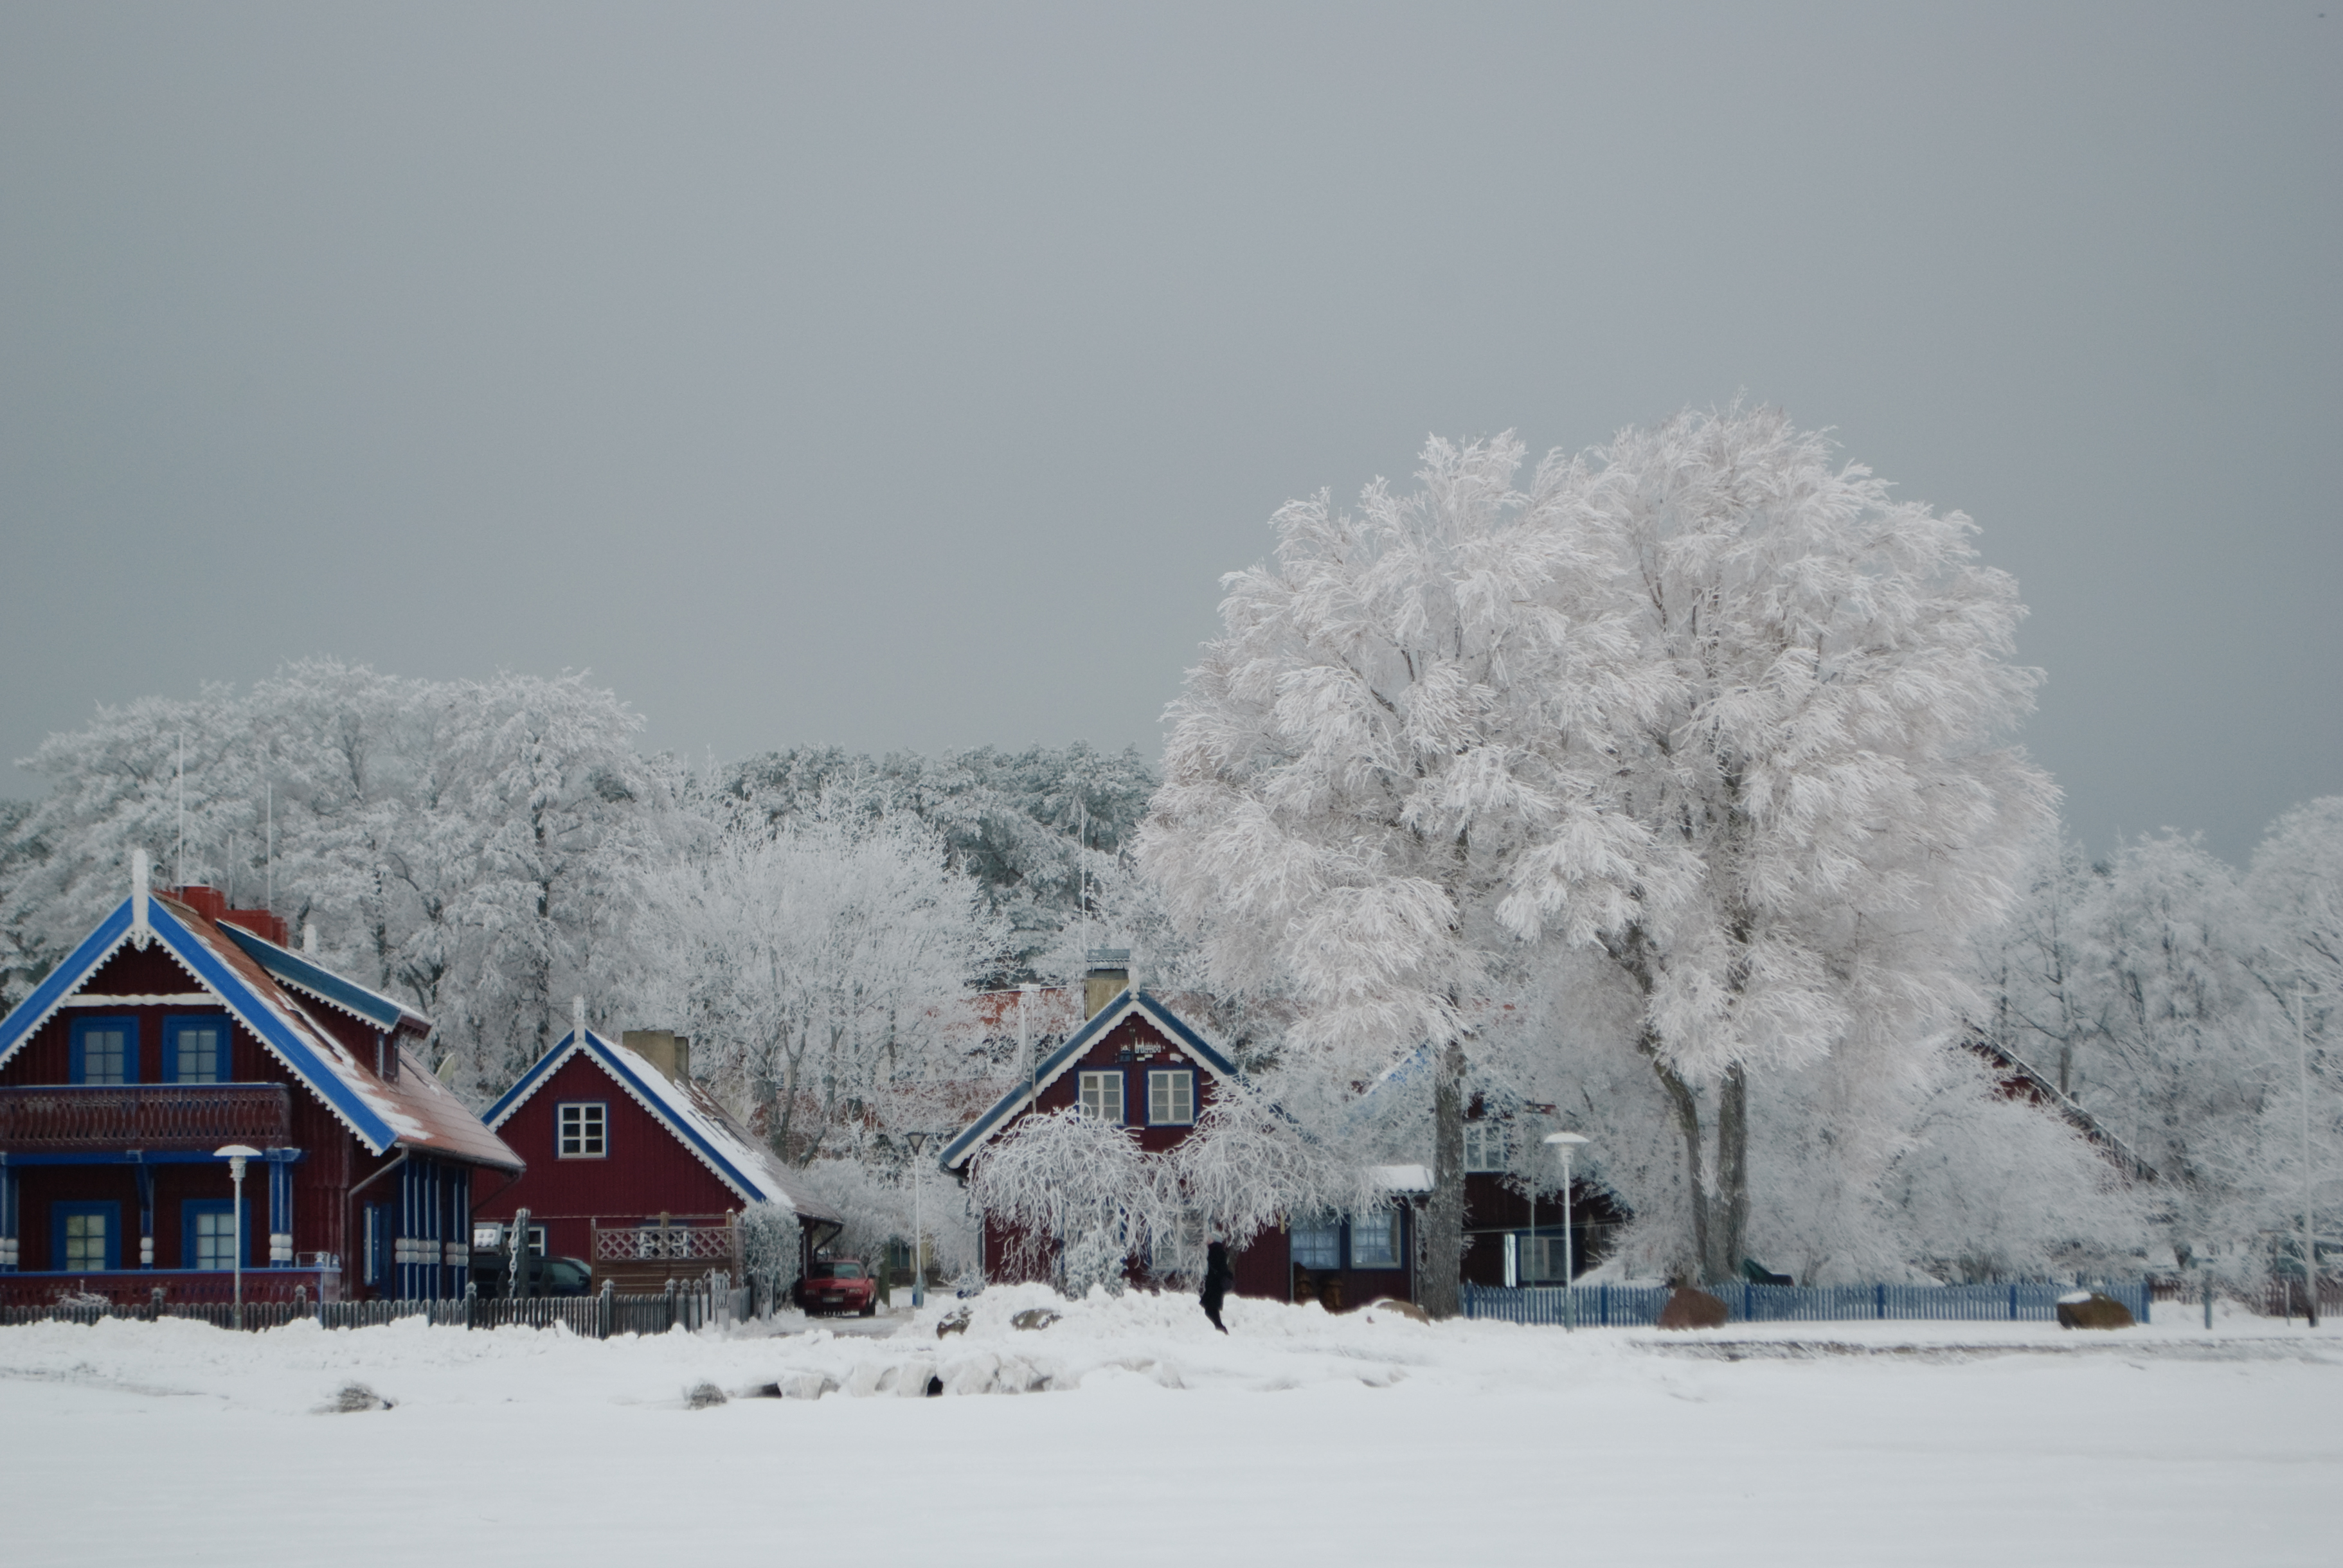 In winter photo